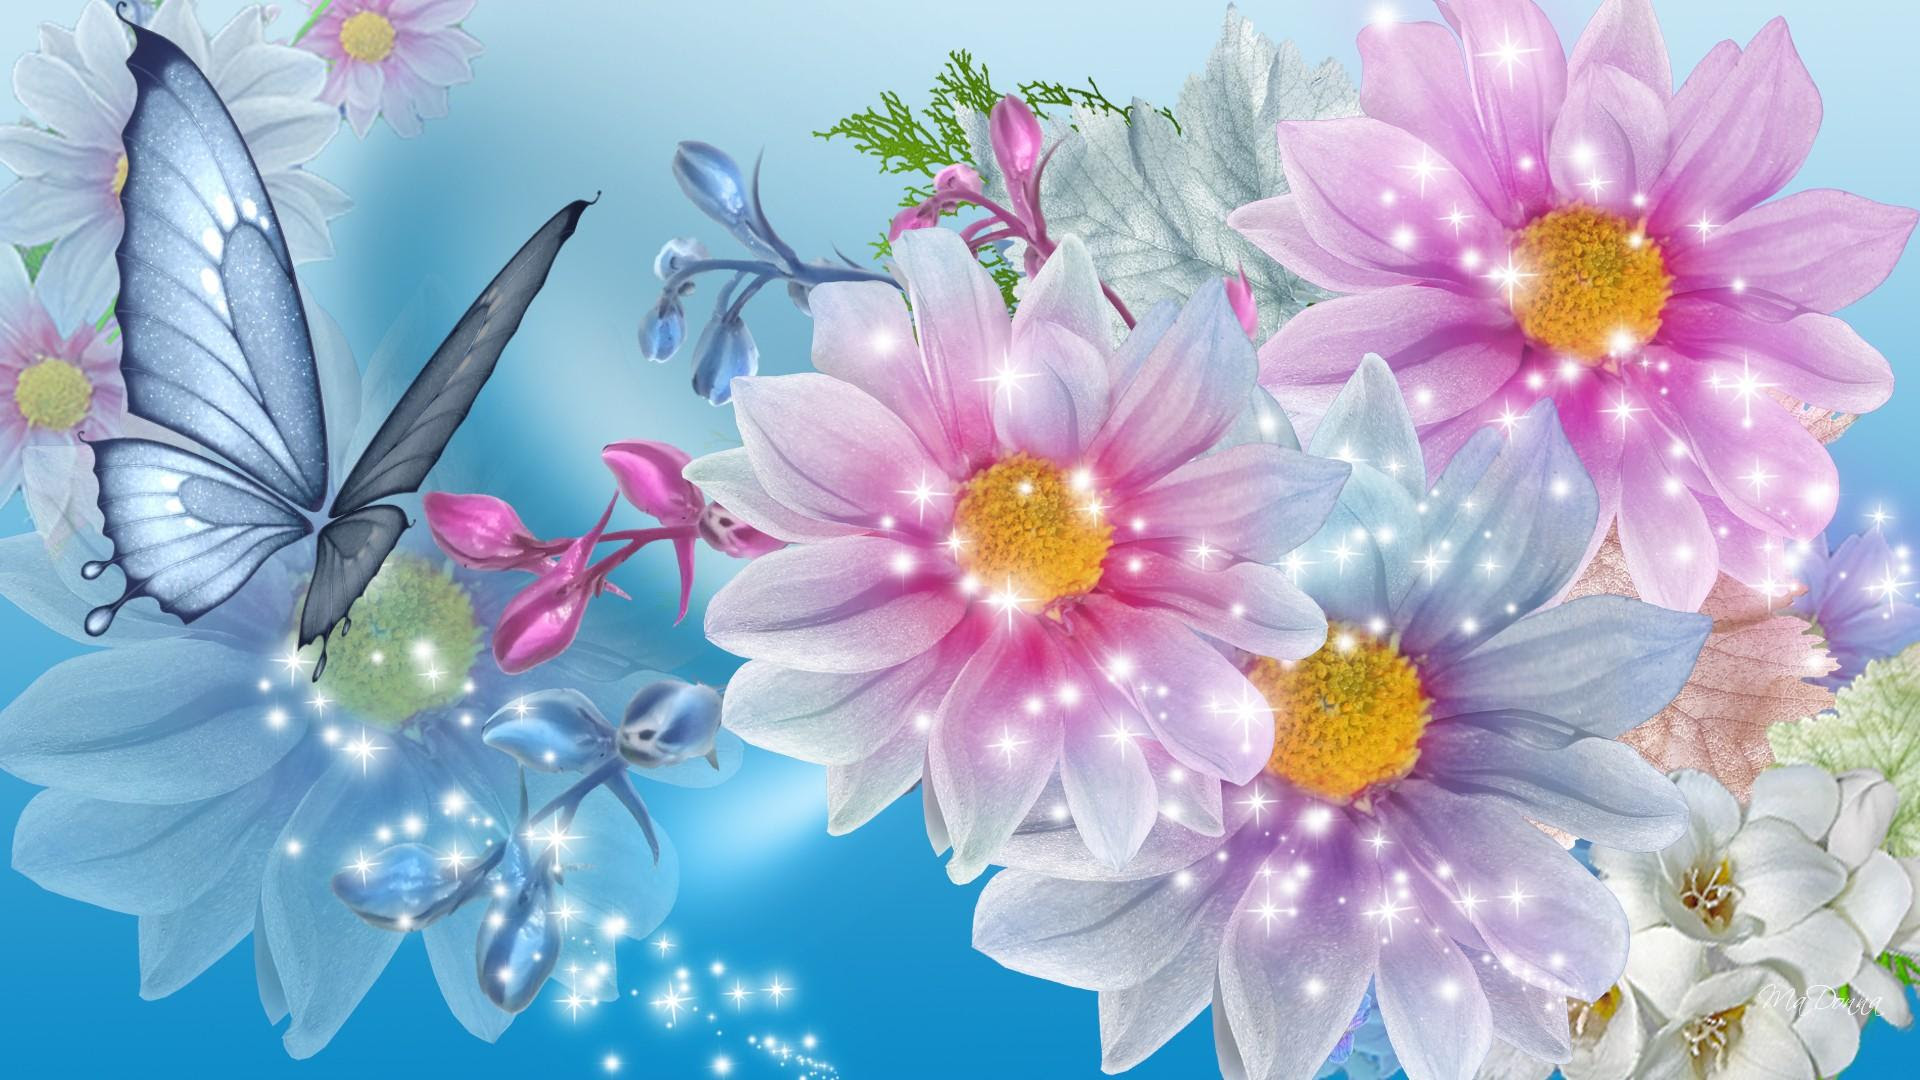 Moving Flower Images For Cool Wallpapers Wallpapers